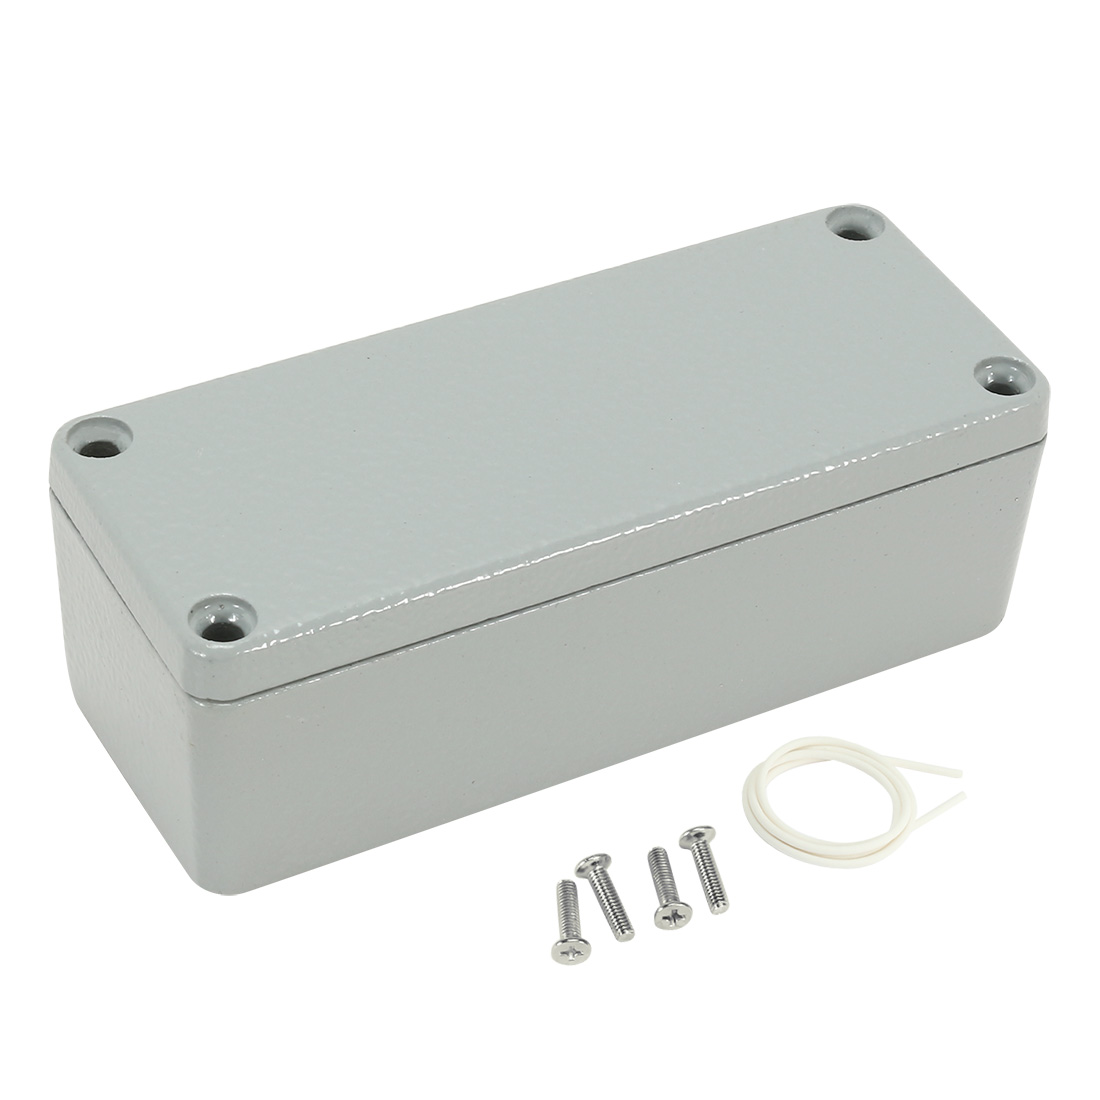 "3.5""x1.4""x1.2""(90mmx36mmx31mm) Aluminum Junction Box Universal Electric Project Enclosure"